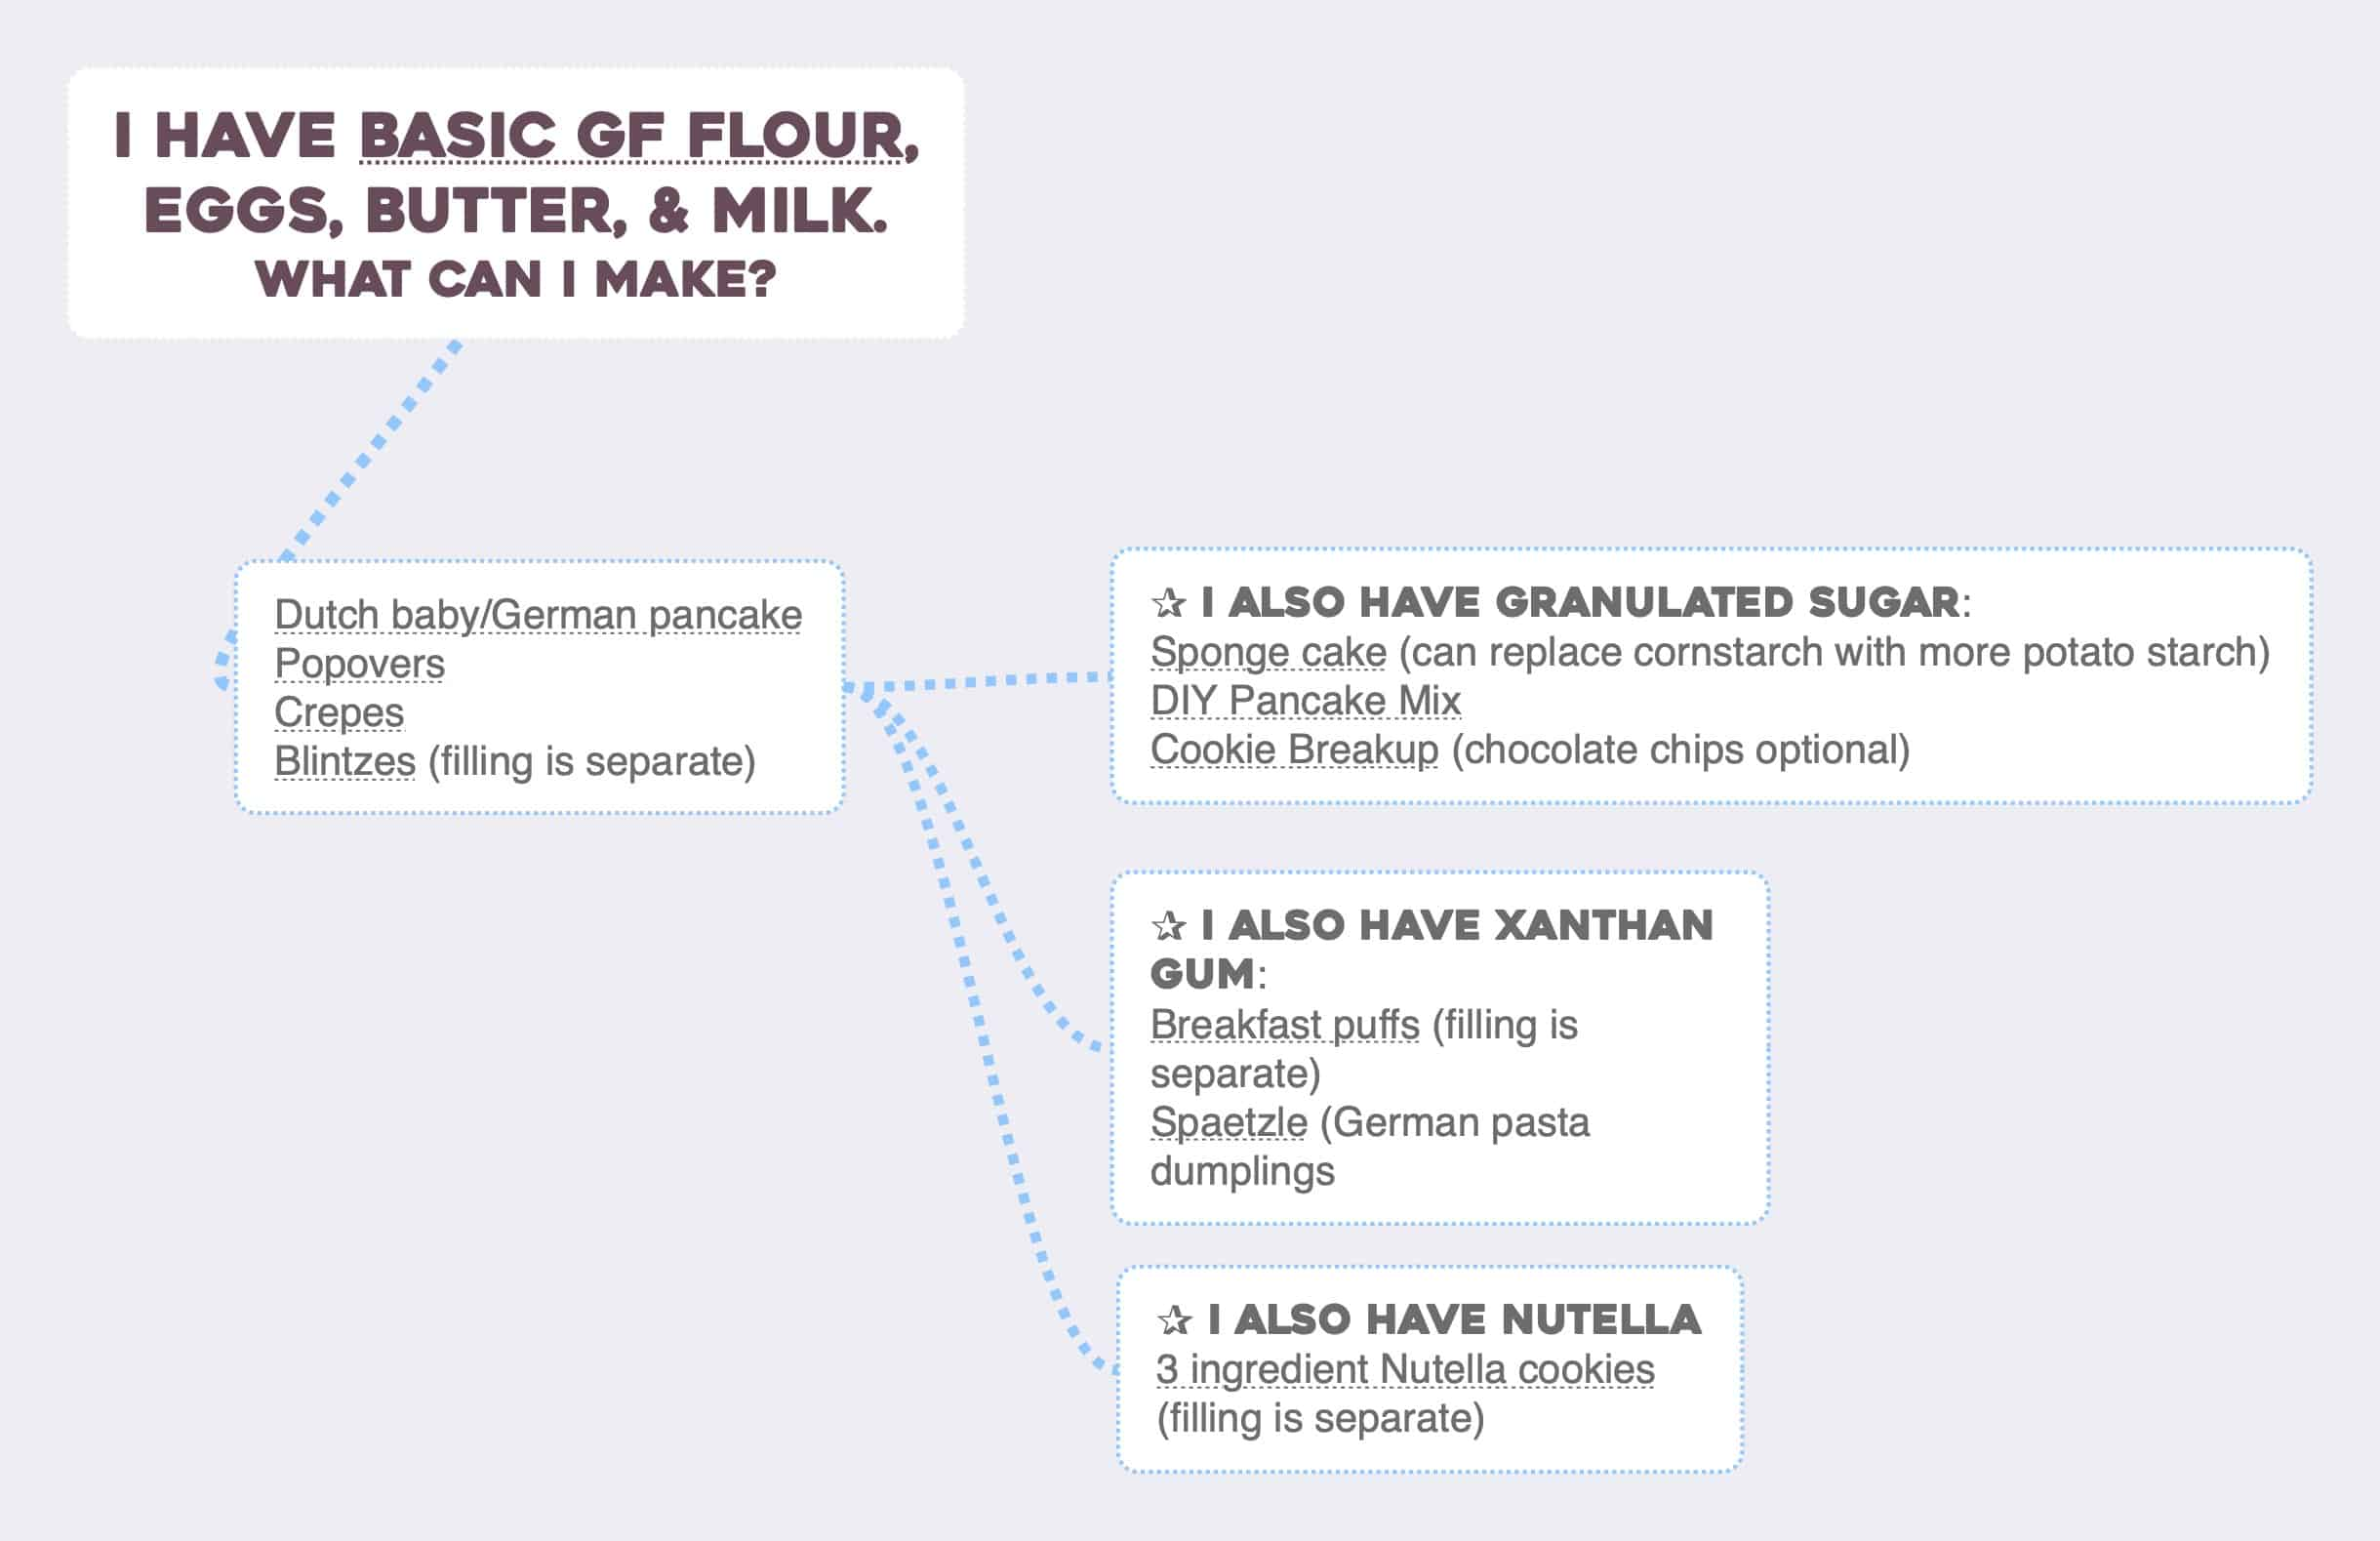 A mindmap showing what you can make with gluten free flour, butter, and milk.